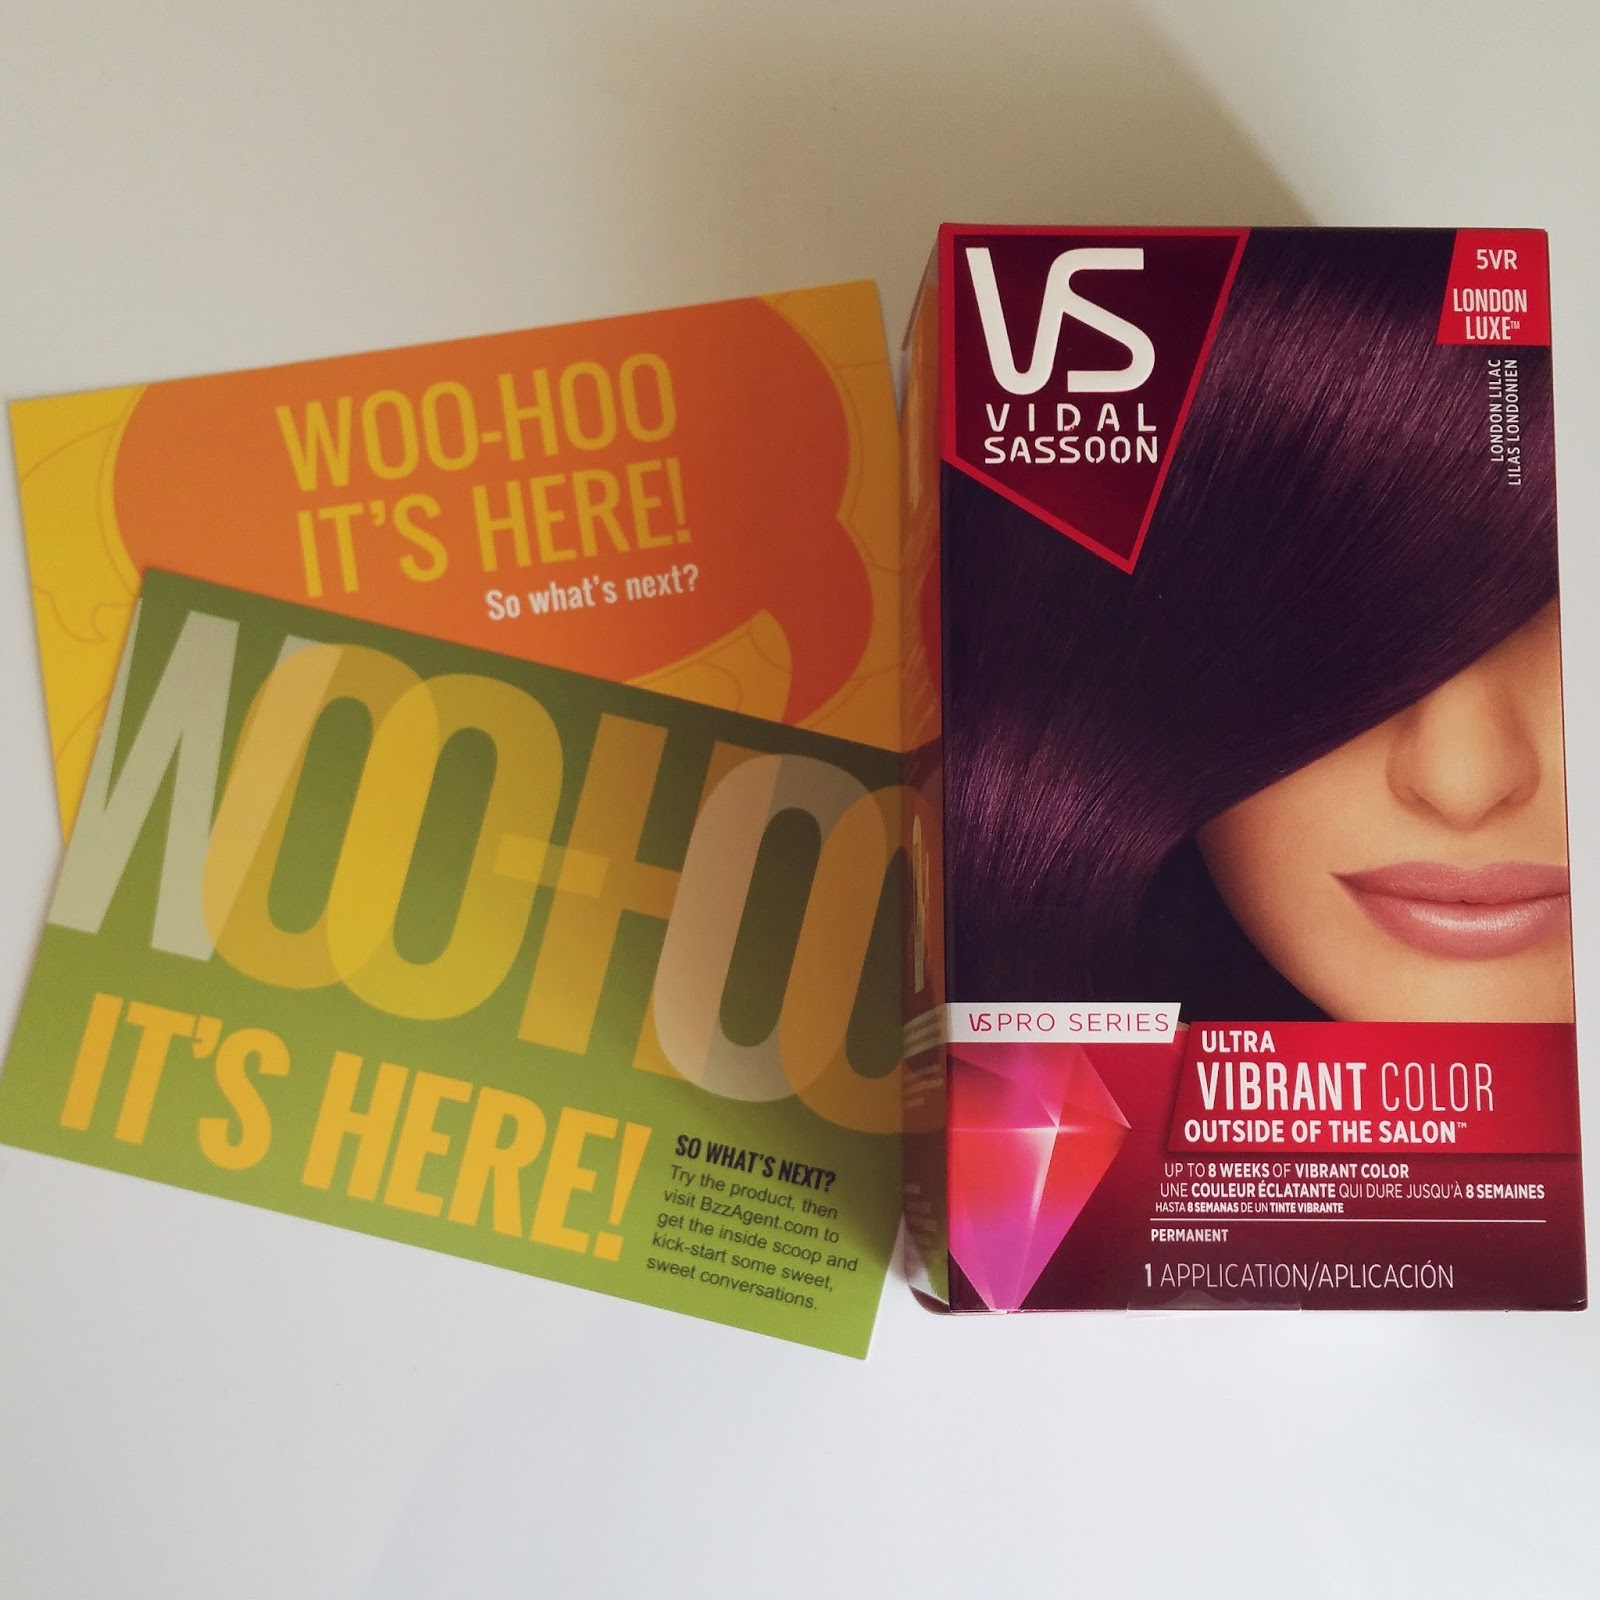 Hair Vidal Sassoons London Lilac Pink Petals